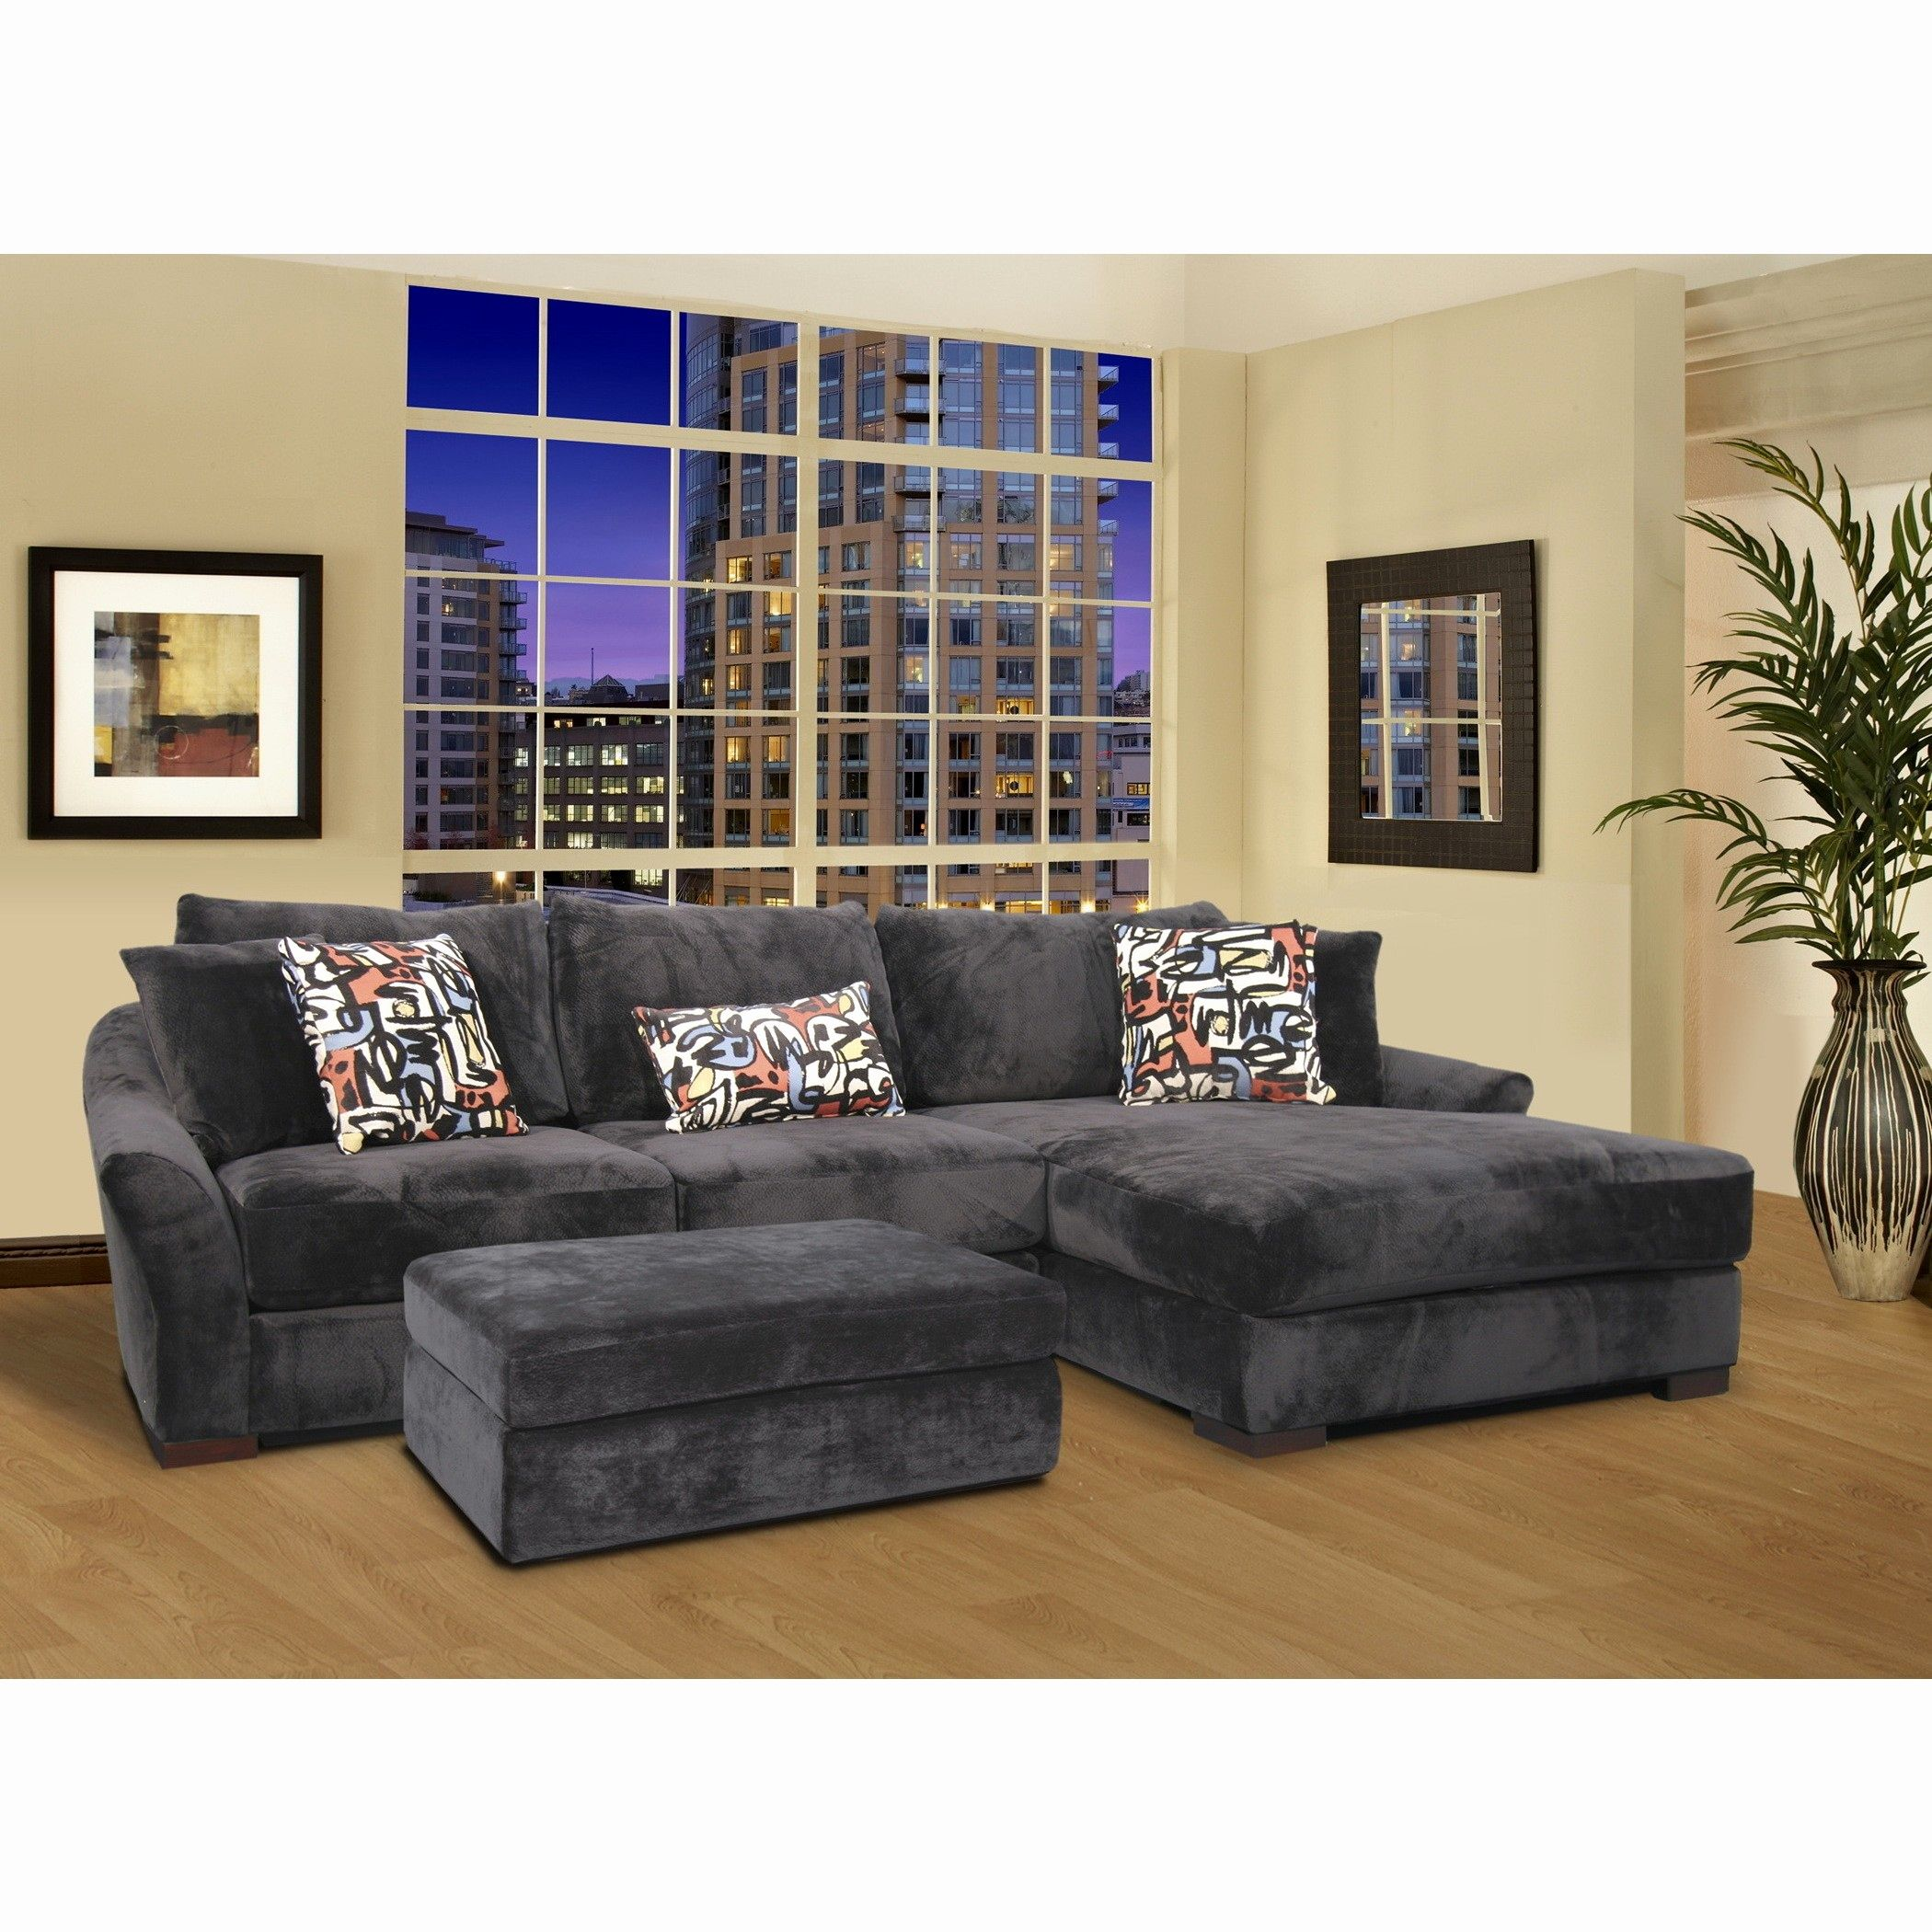 Ideas Velvet L Shaped Sofa Art Velvet L Shaped Sofa Elegant Grey